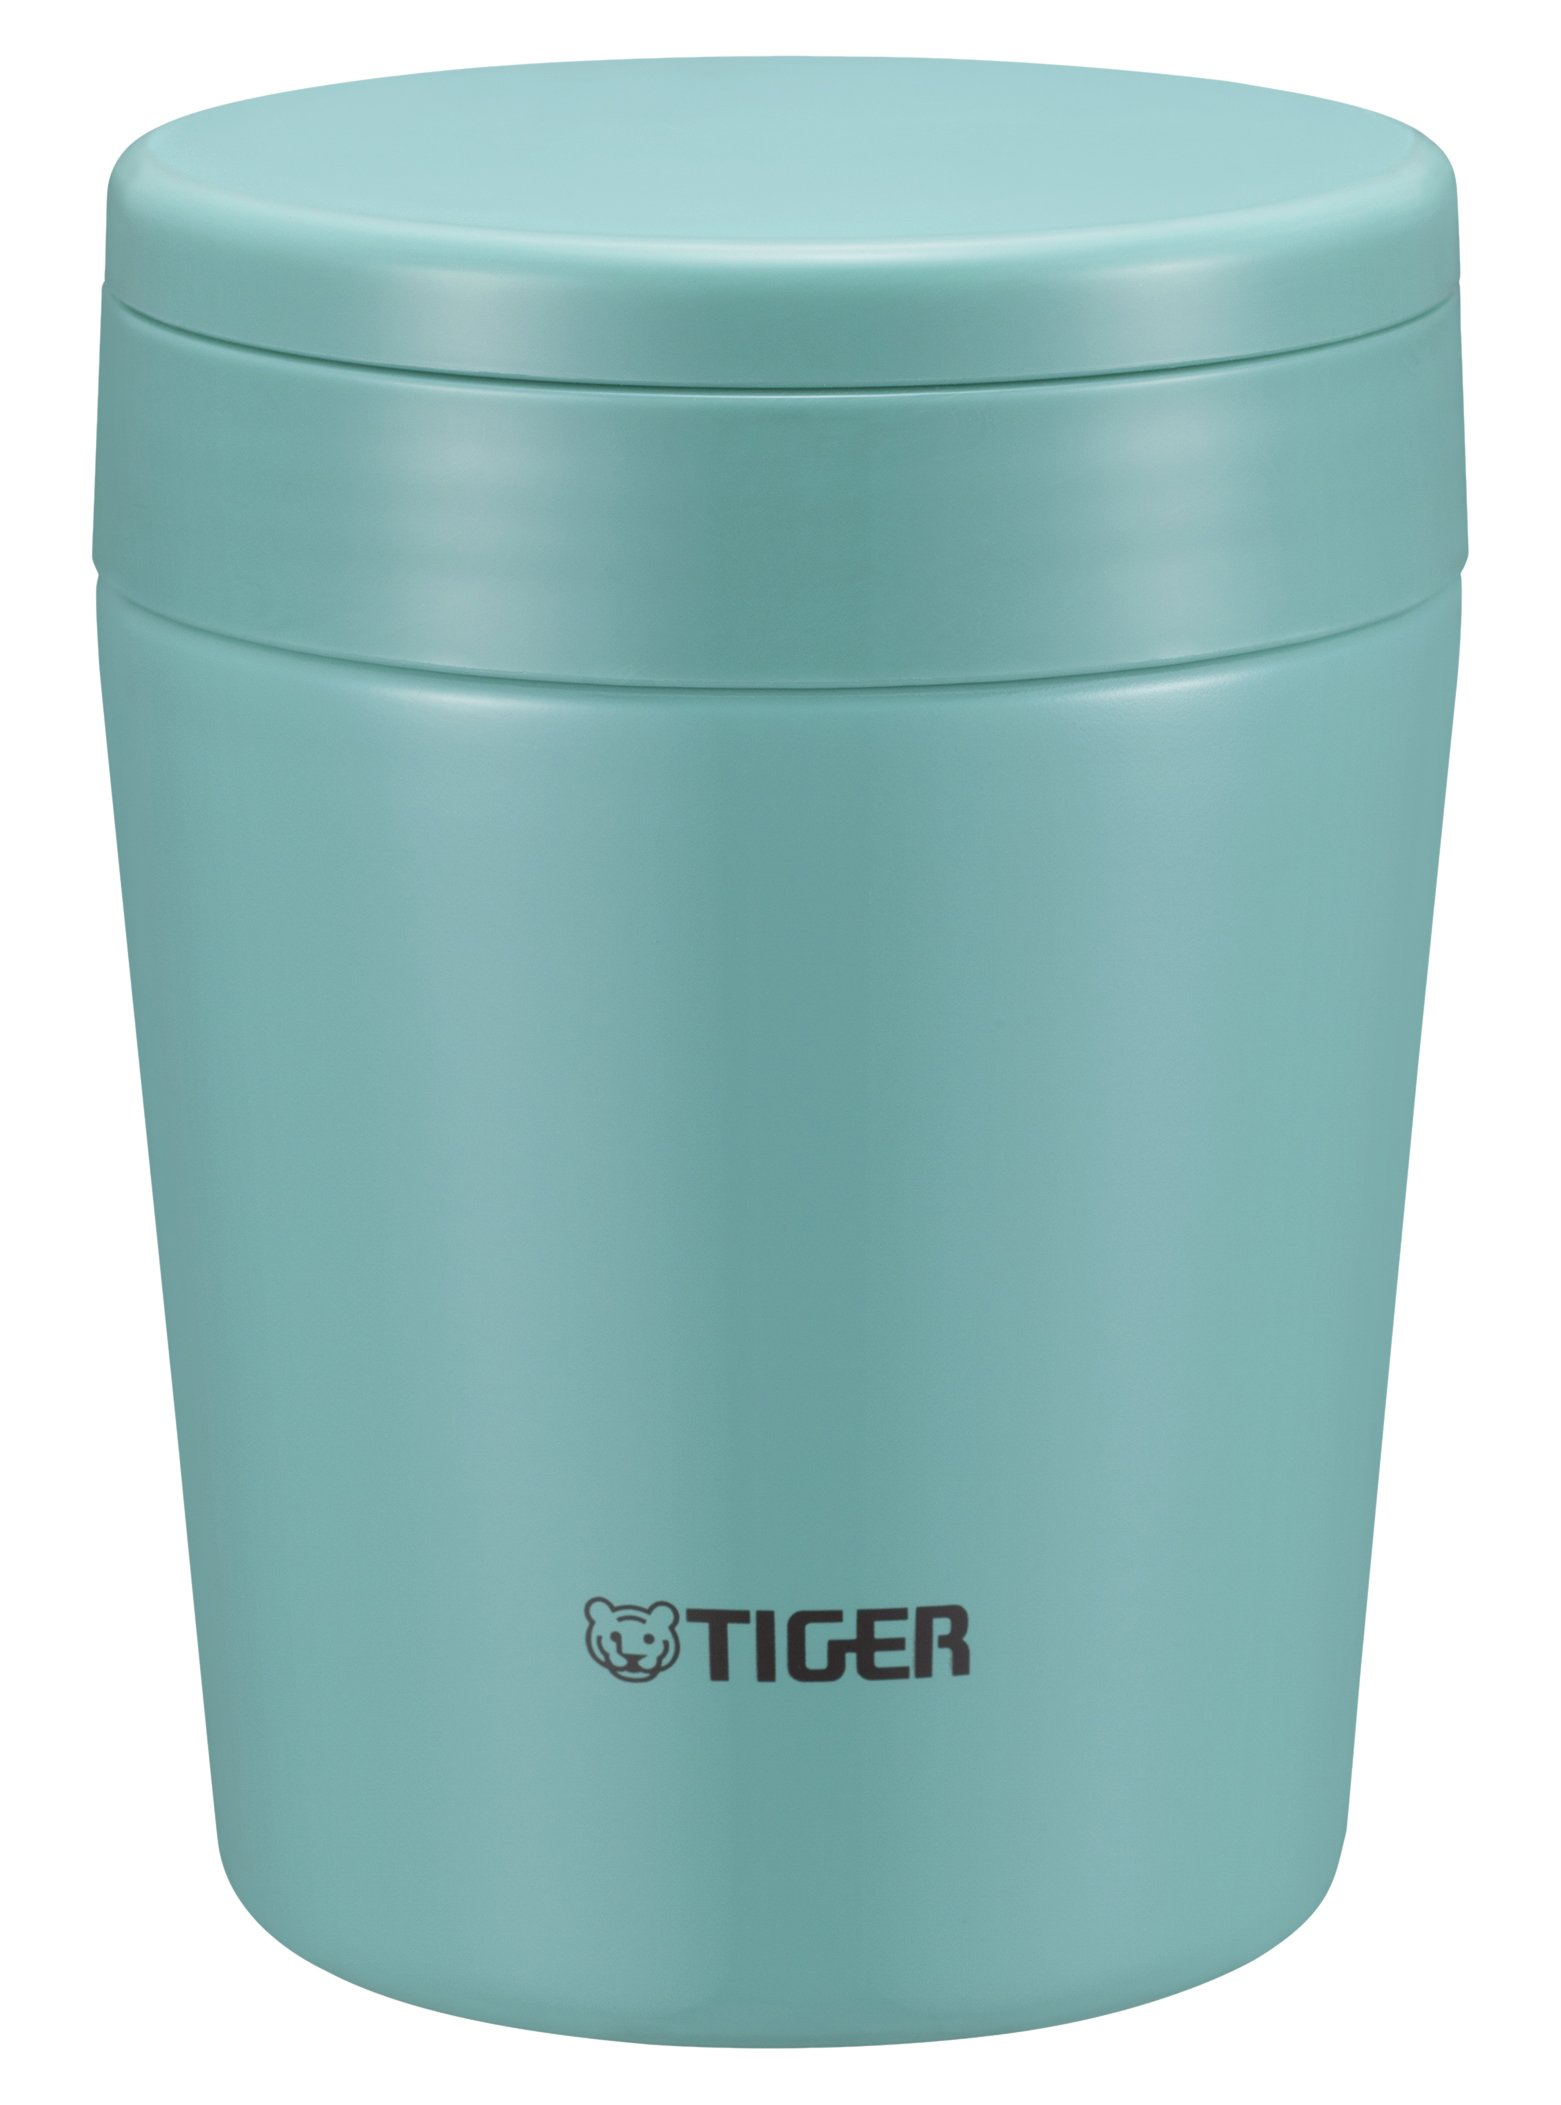 Tiger MCL-A030 AM Vacuum Insulated Thermal Soup Cup, Stainless Steel, Wide Mouth, 10 oz/0.30L, Mint Blue